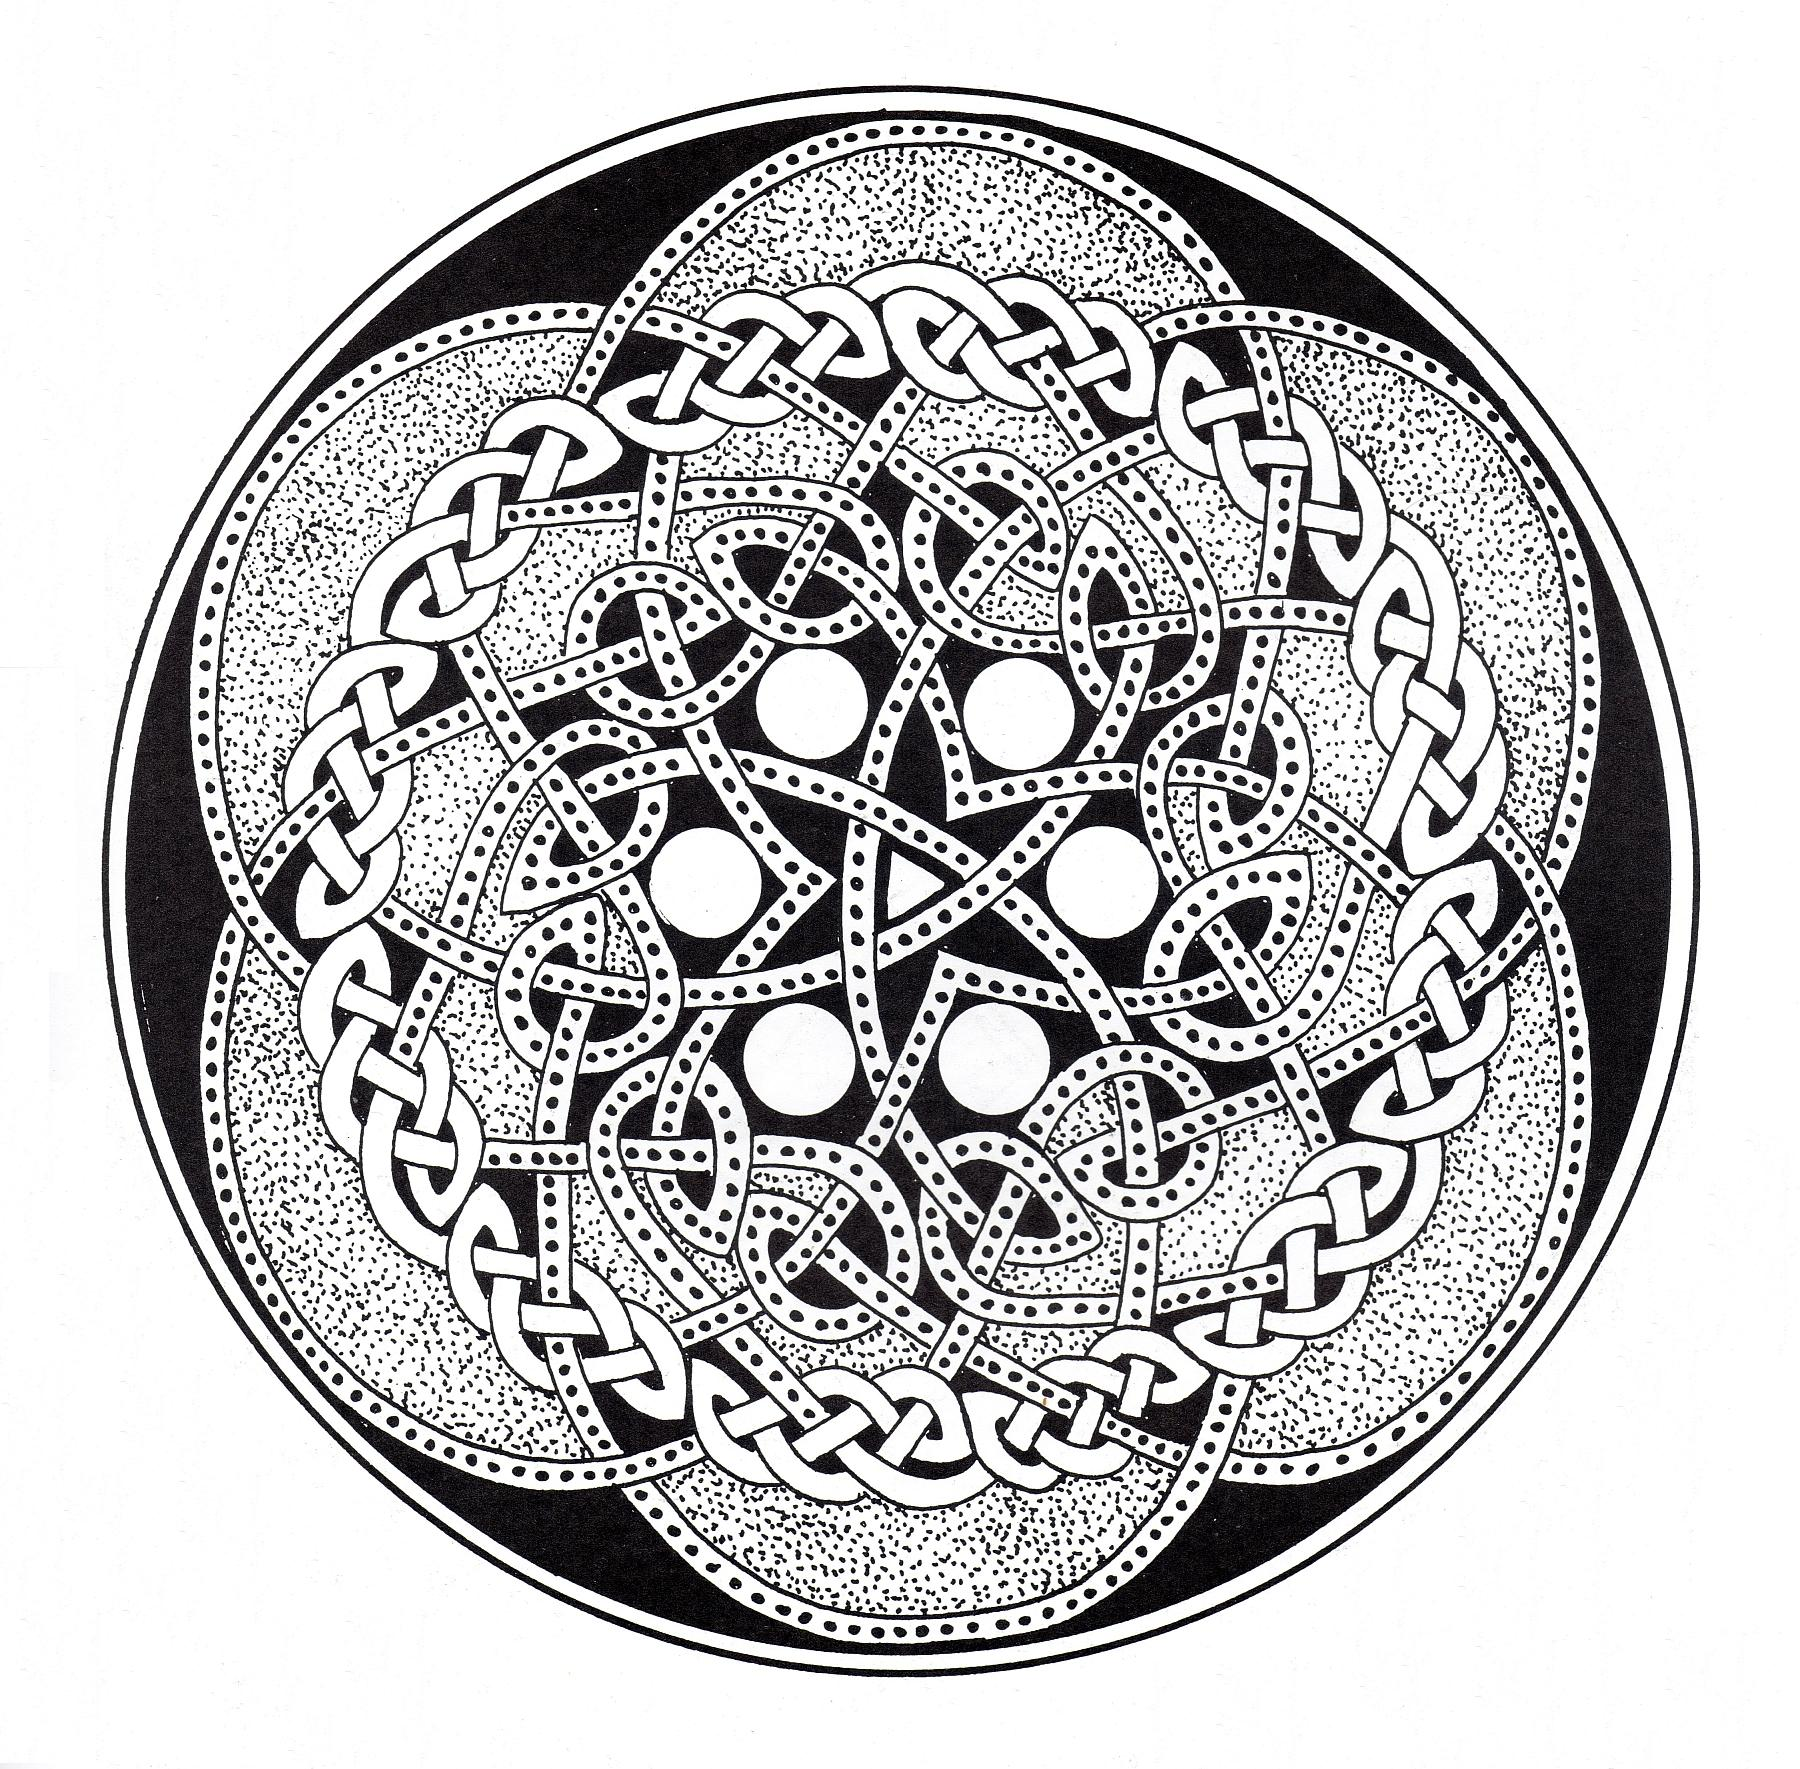 Celtic art design looking like a Mandala